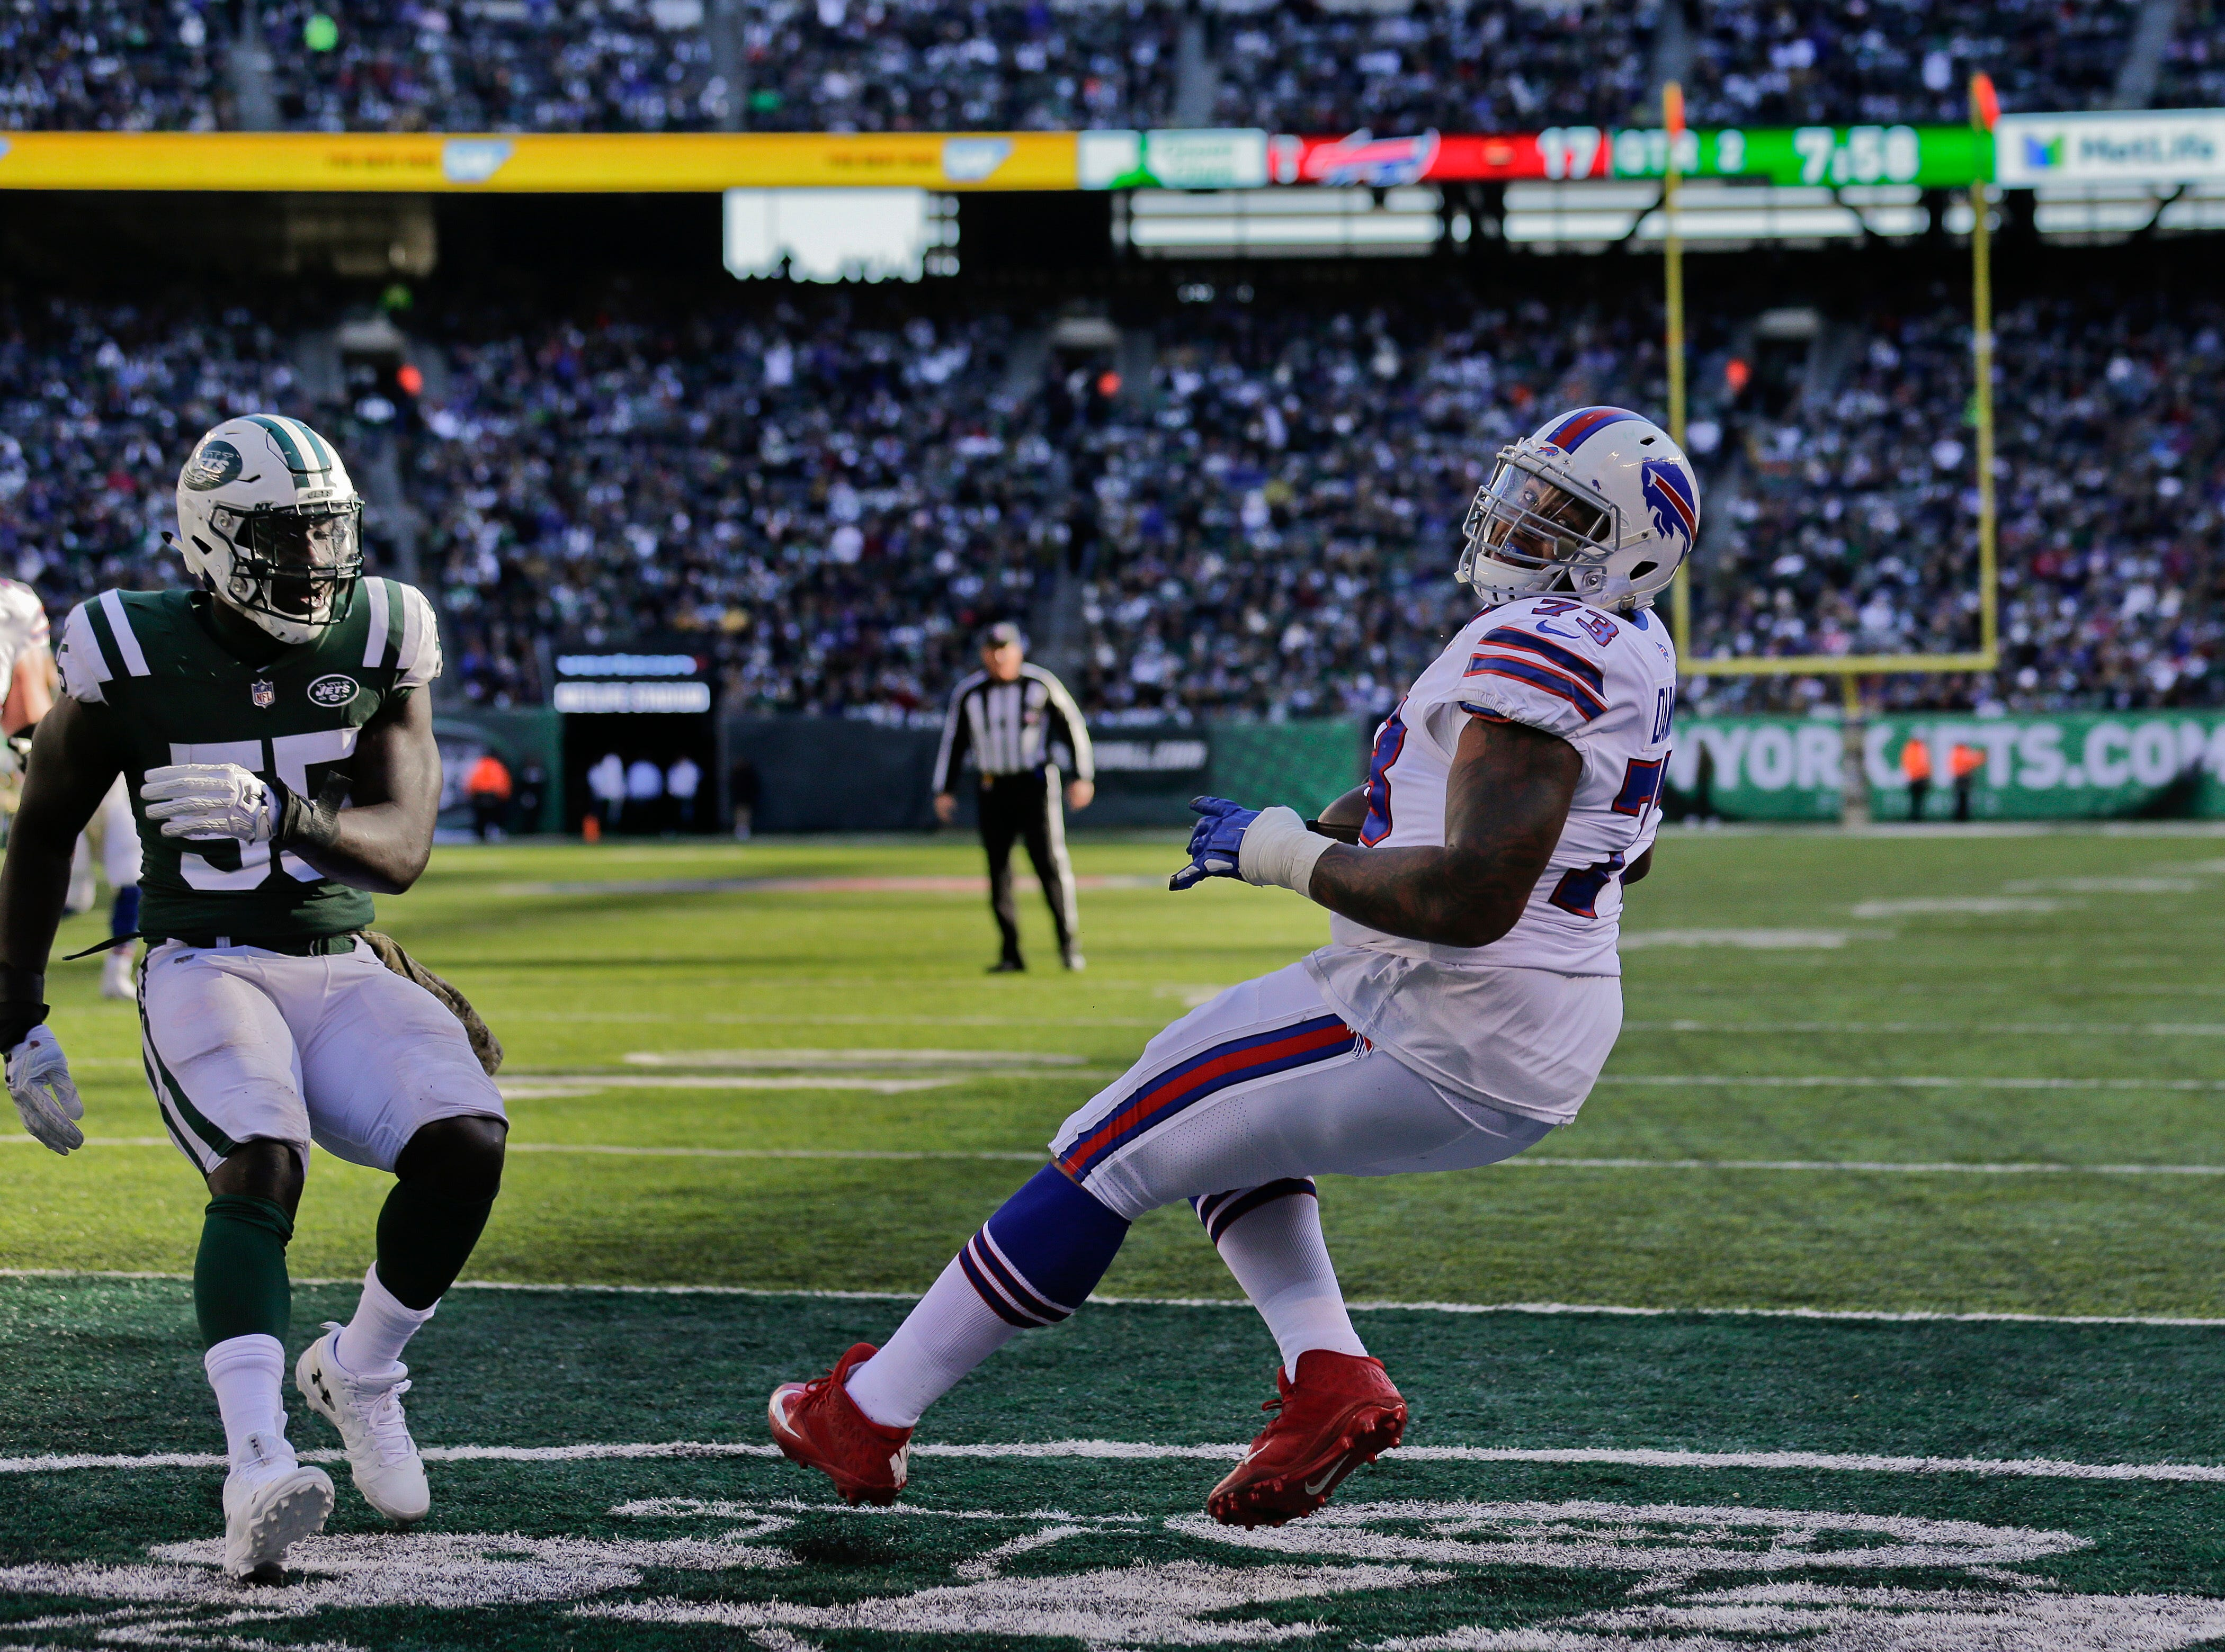 Buffalo Bills offensive tackle Dion Dawkins (73) reacts after scoring a touchdown against the New York Jets during the second quarter of an NFL football game, Sunday, Nov. 11, 2018, in East Rutherford, N.J. (AP Photo/Seth Wenig)